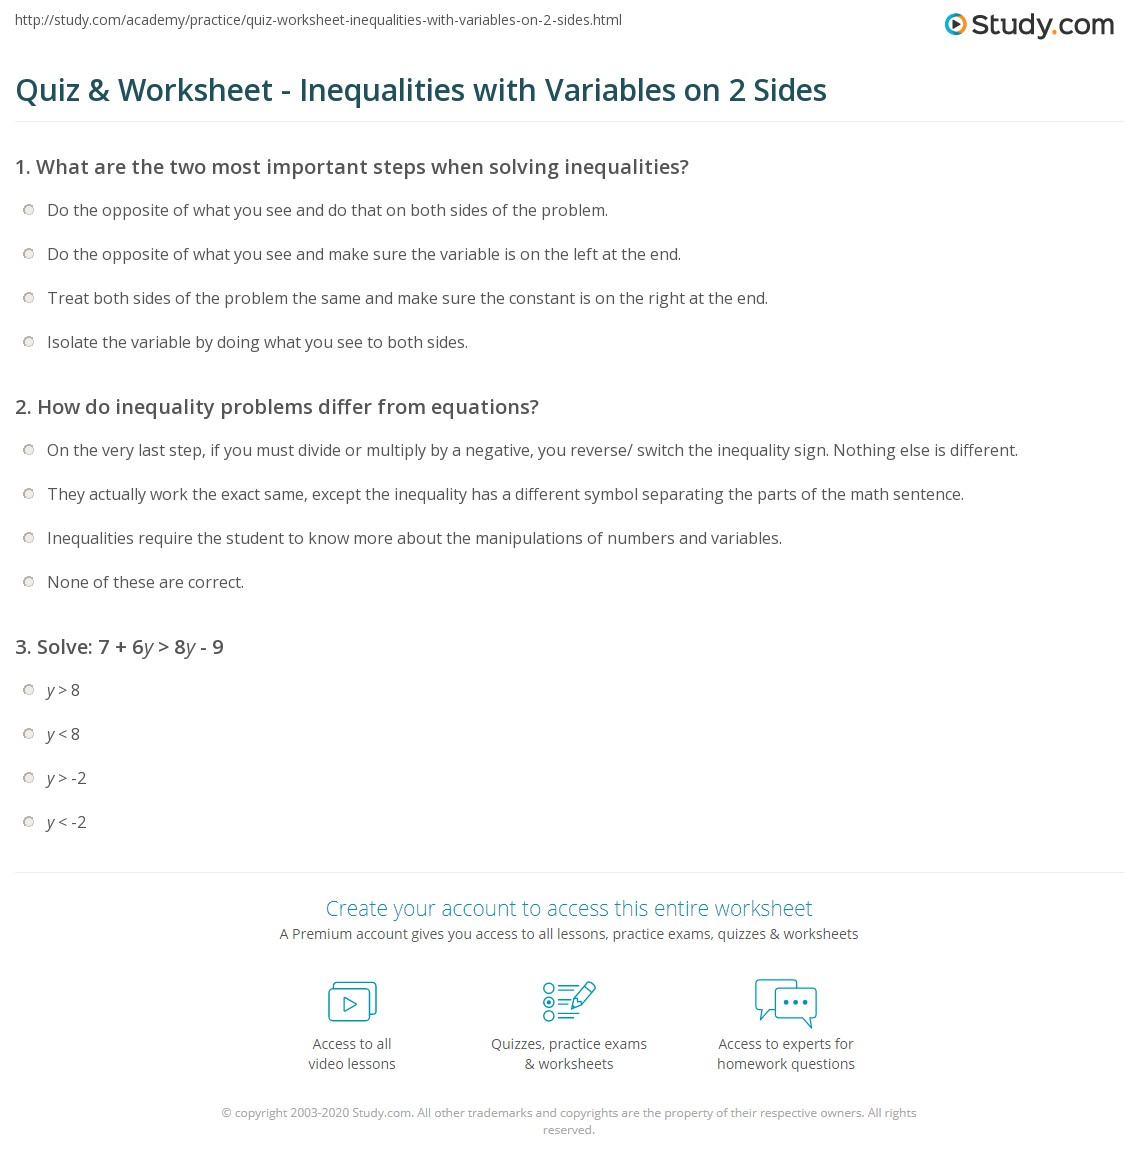 Quiz & Worksheet - Inequalities with Variables on 2 Sides | Study.com